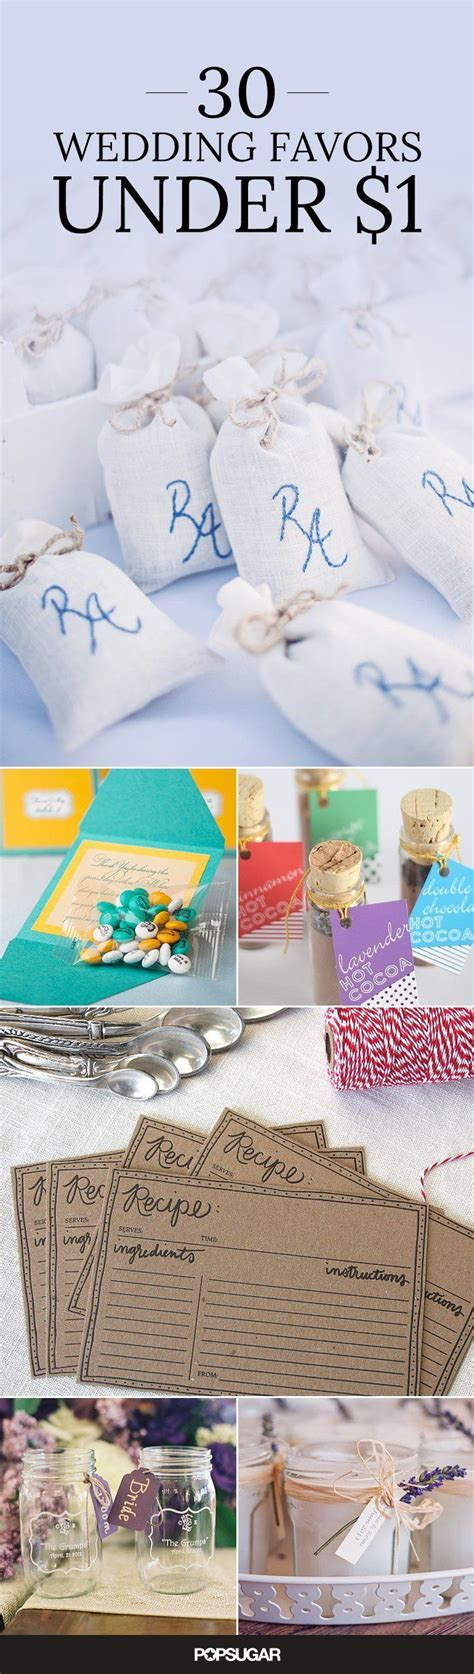 17 Best ideas about Country Wedding Favors on Pinterest